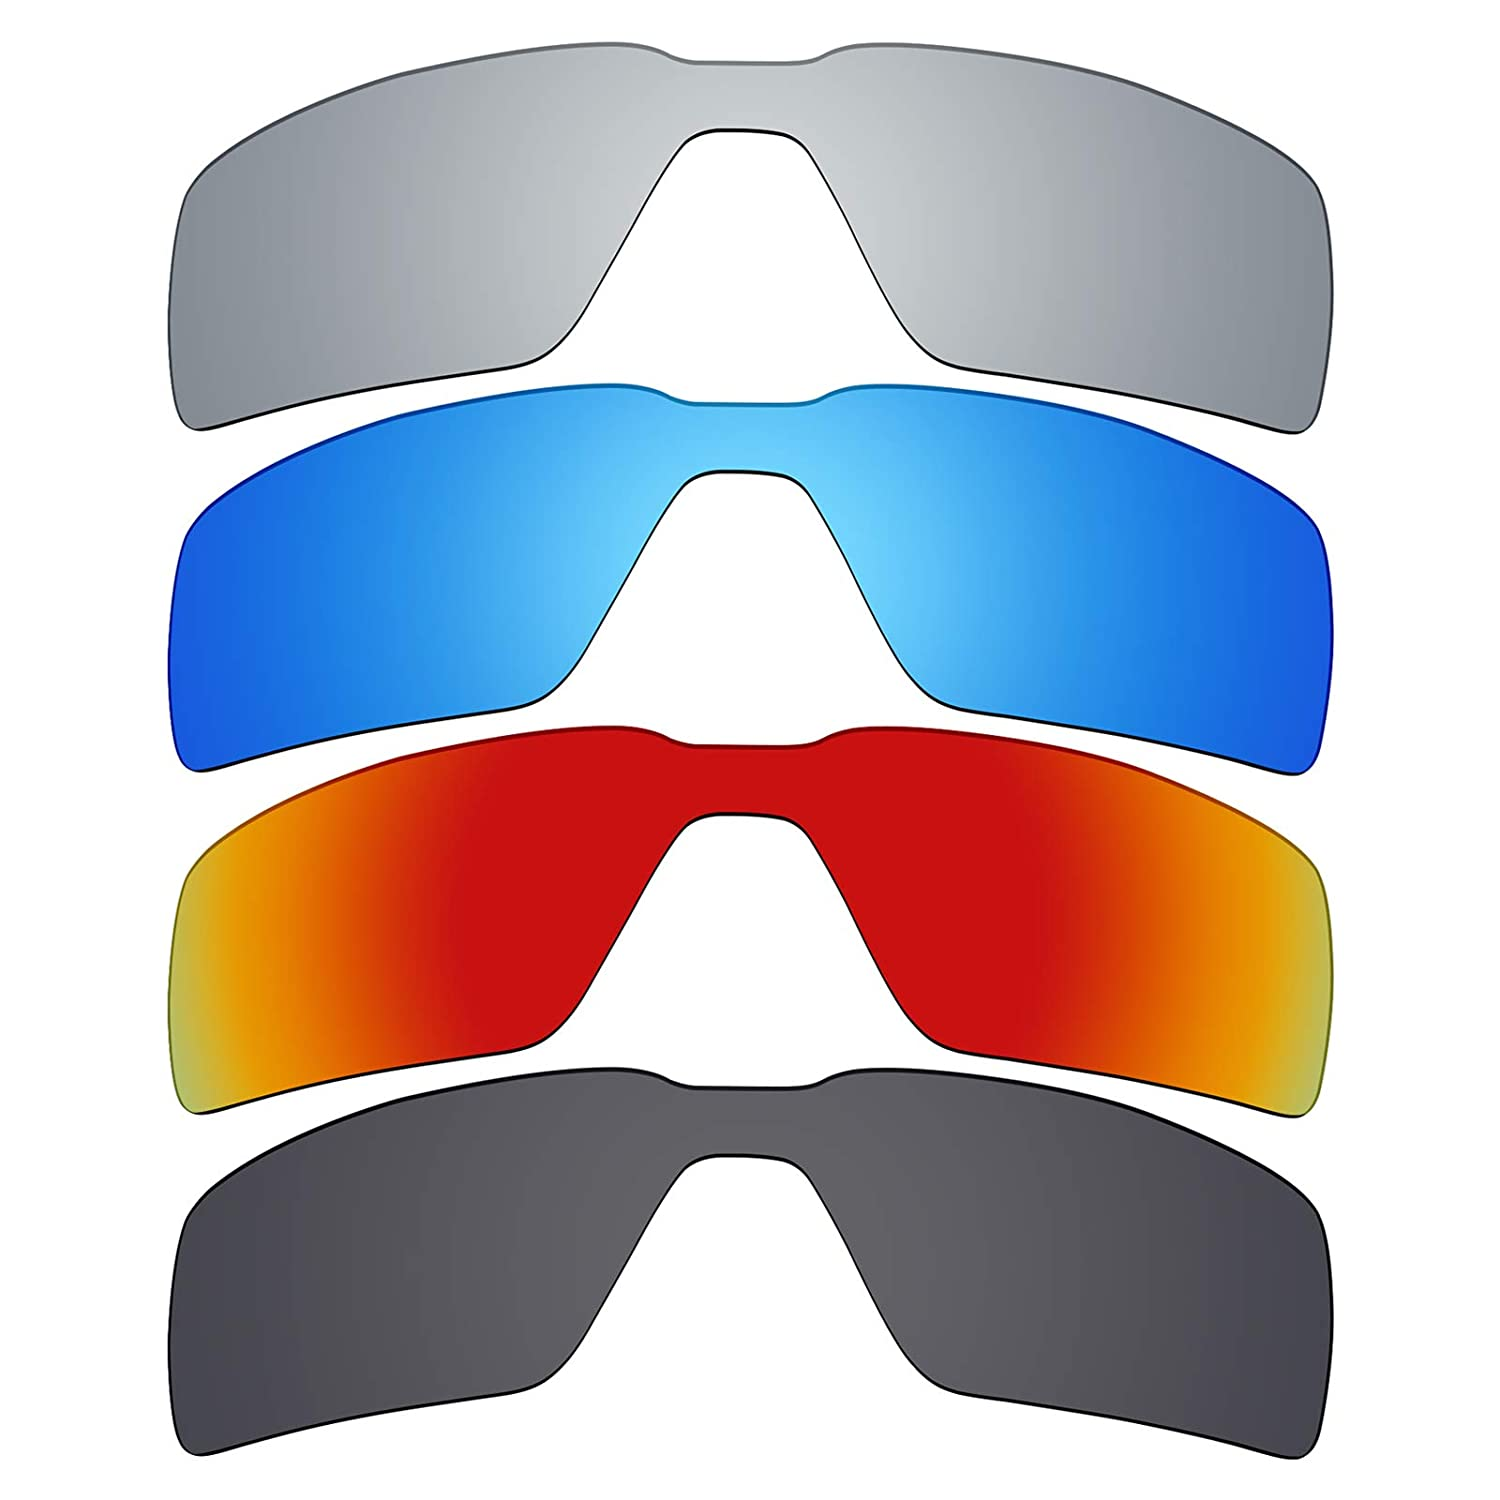 f7c021cfa4e5a Amazon.com  Mryok 4 Pair Polarized Replacement Lenses for Oakley Probation  Sunglass - Stealth Black Fire Red Ice Blue Silver Titanium  Clothing